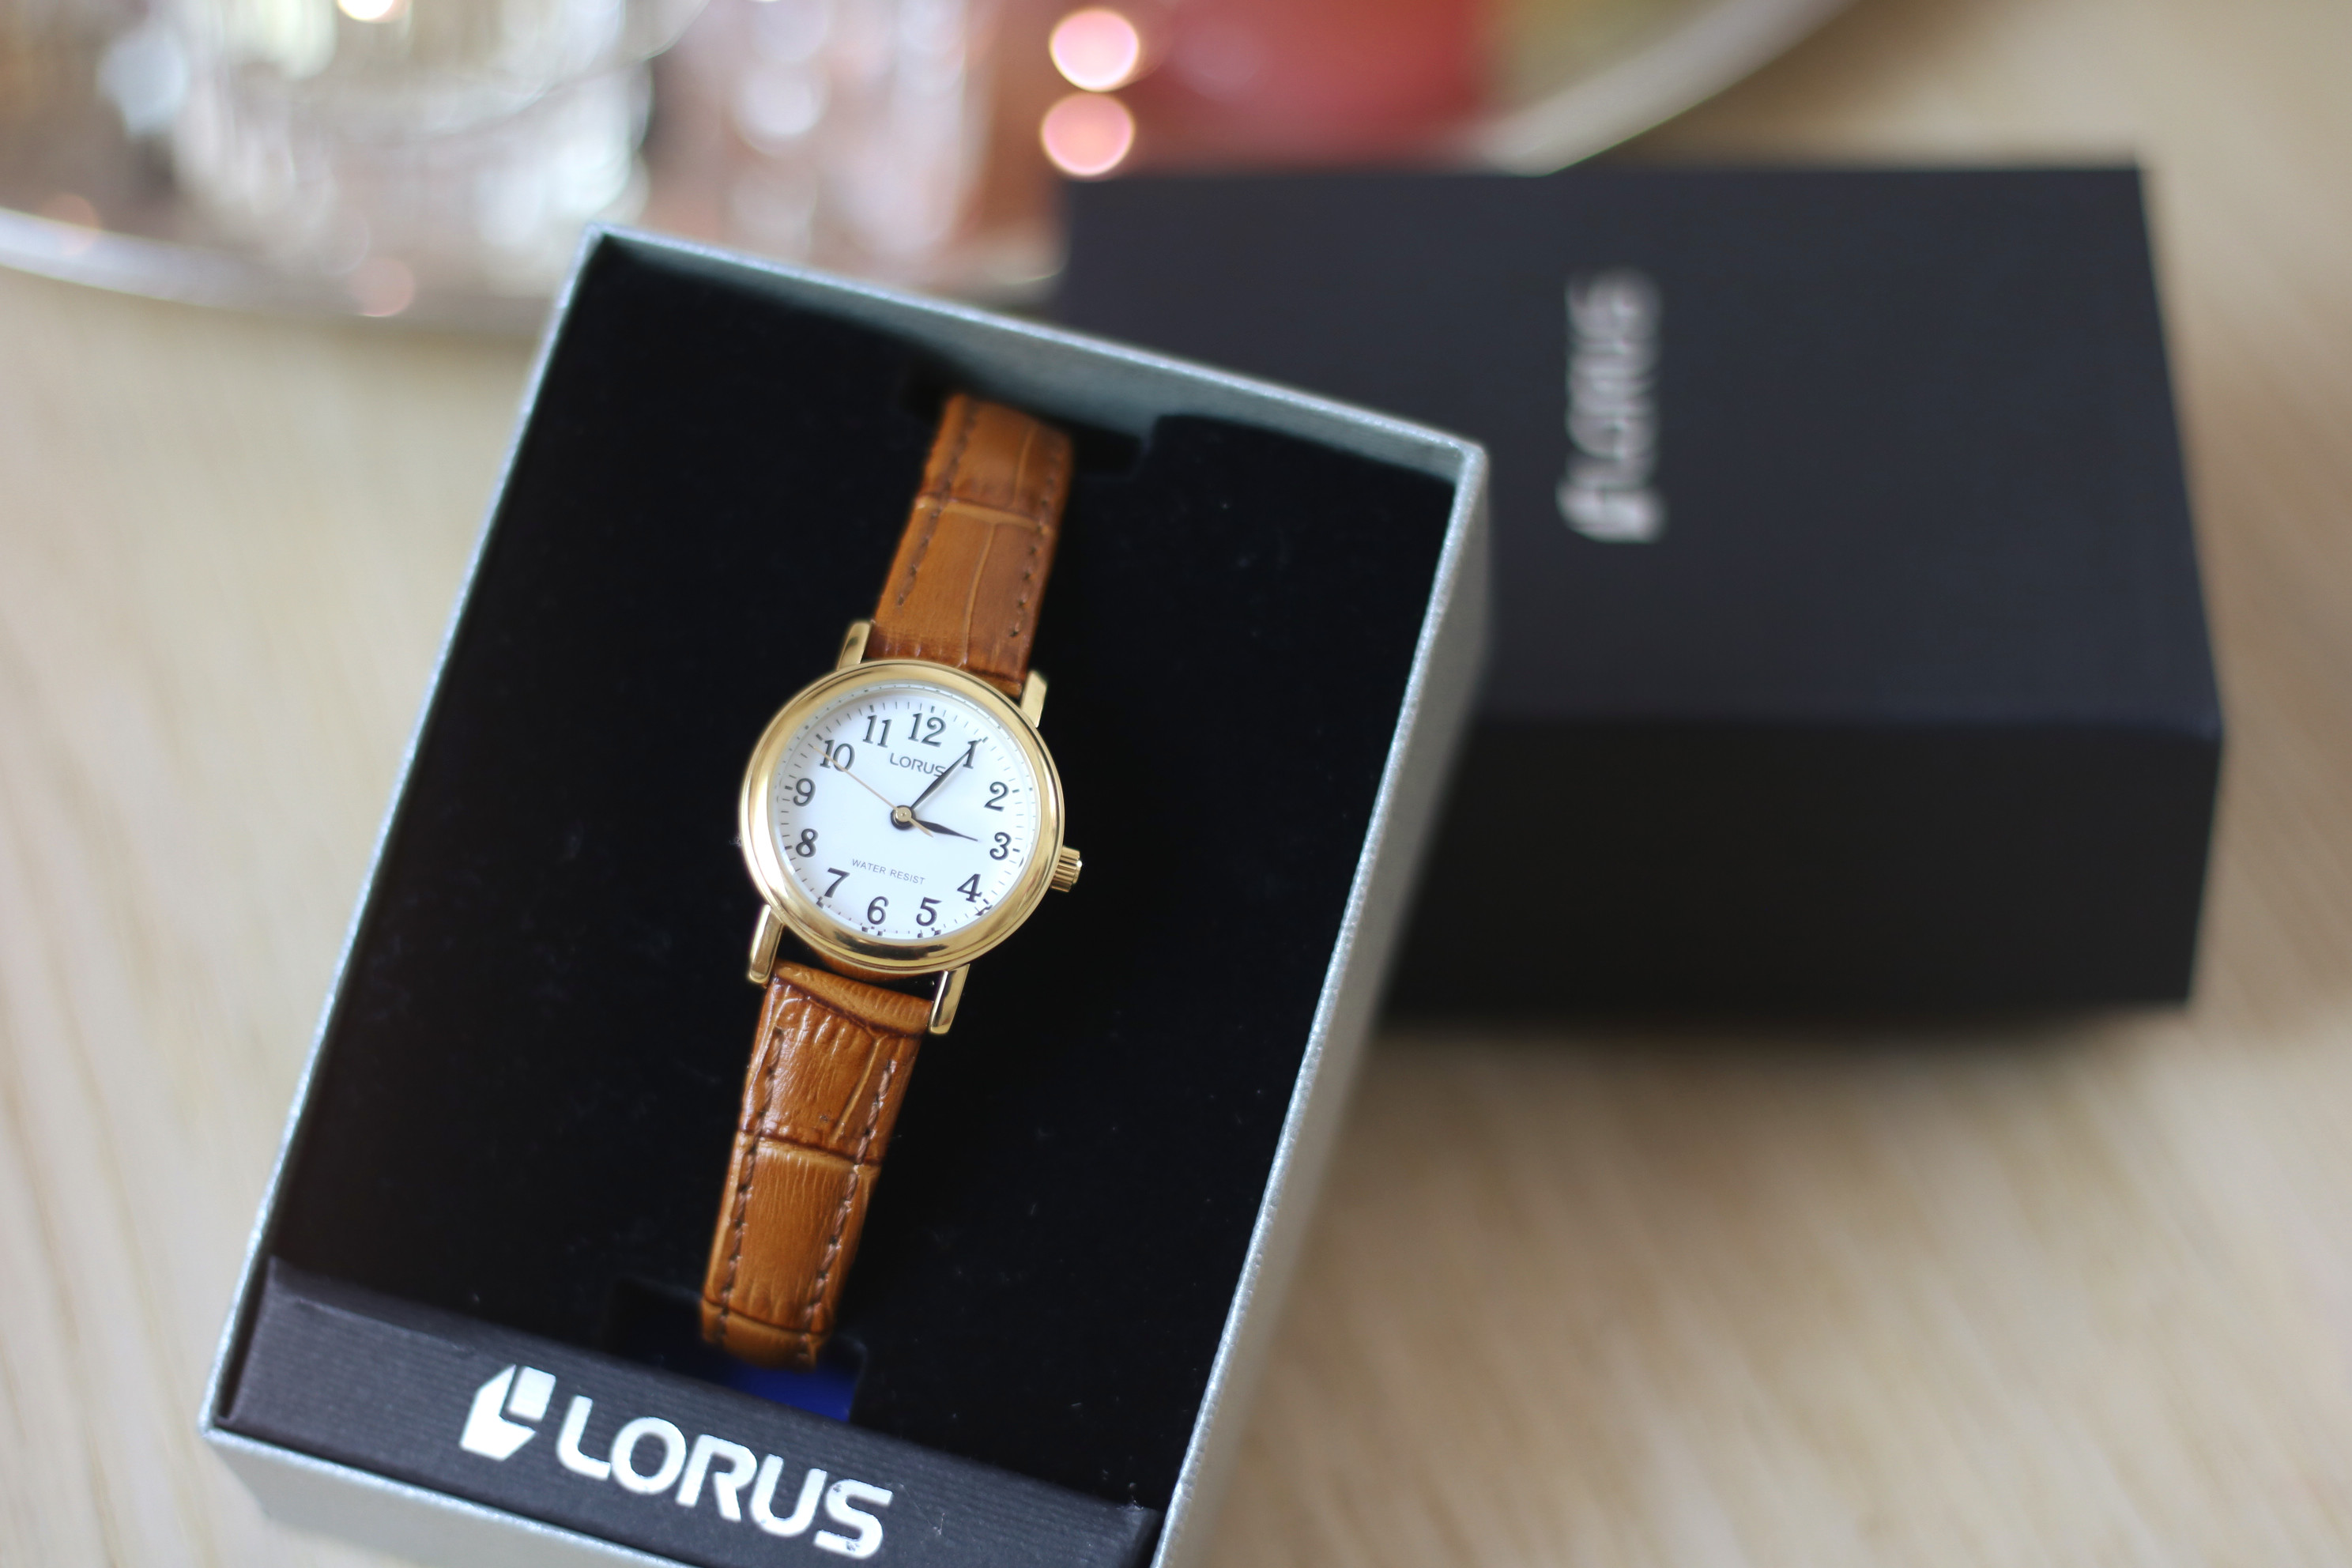 lorus-watch-in-box